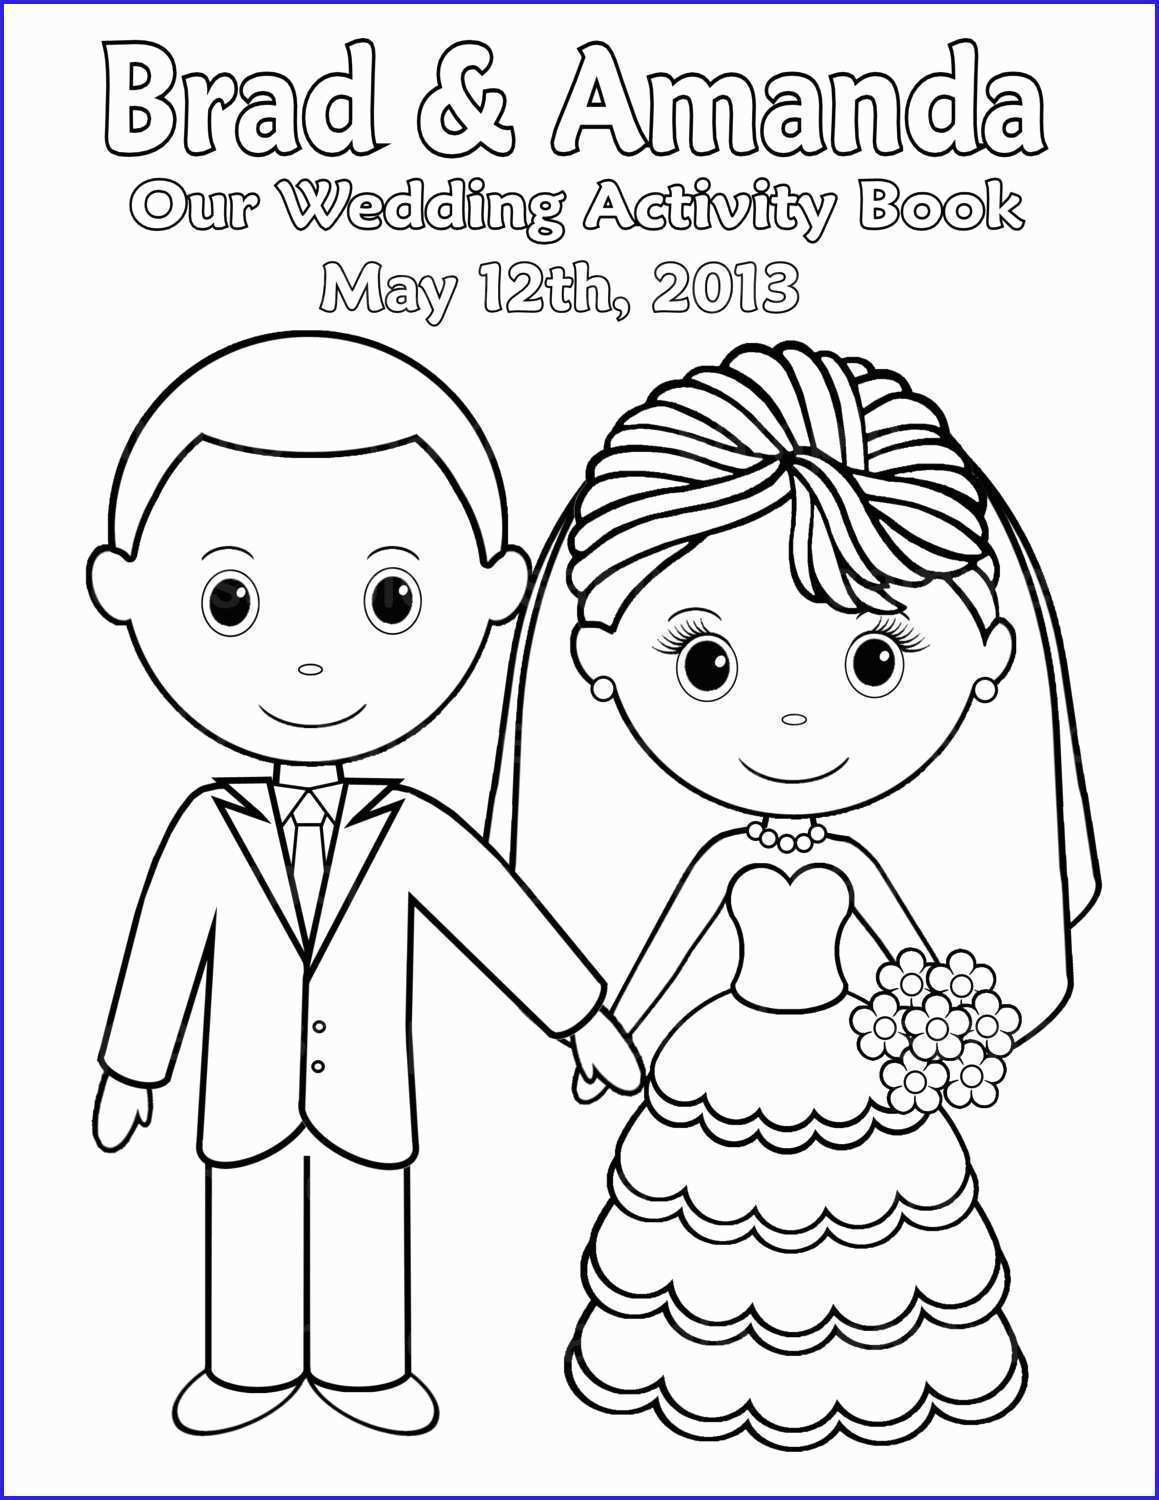 Coloring Pages : Custom Coloring Books From Photos Luxury Free - Free Printable Personalized Wedding Coloring Book